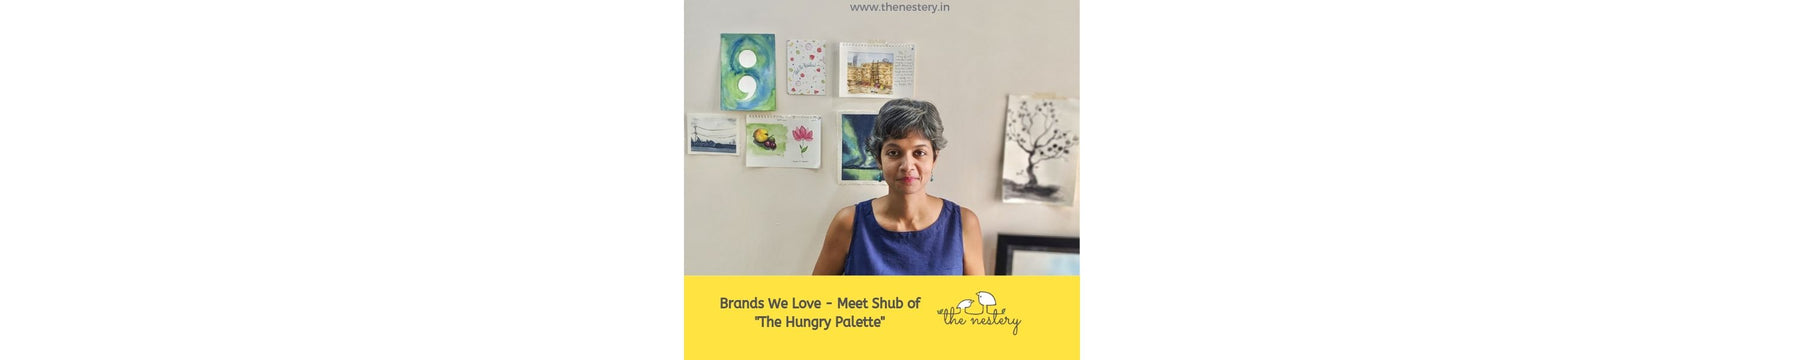 Brands We Love - Meet Shub of The Hungry Palette